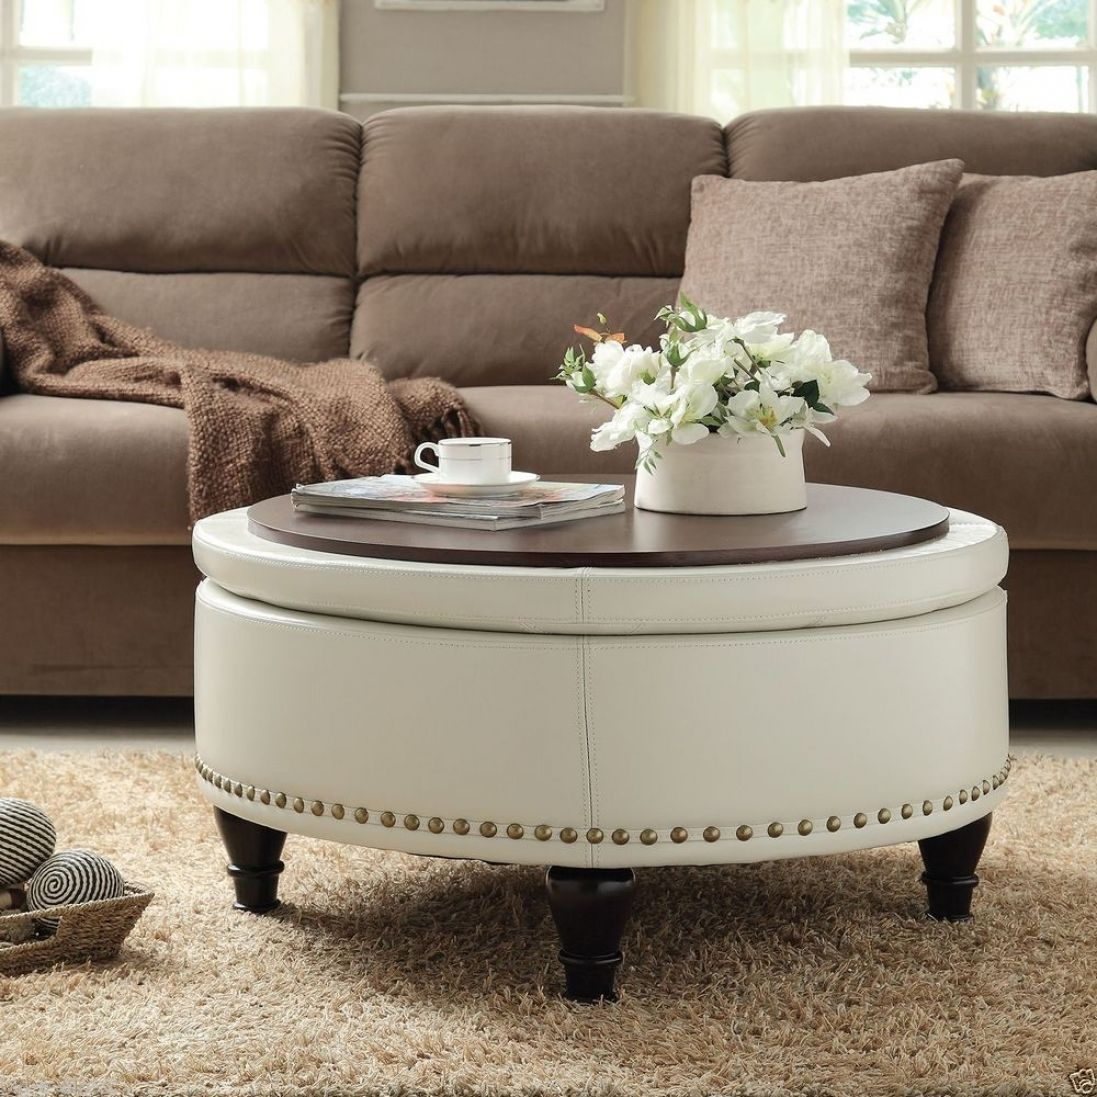 Coffee Table Tufted Round Coffee Table Ottoman And Tray With In Proportions  1568 X 1045 Oversized Round Ottoman Coffee Table   Producing Your Own Food  Inst